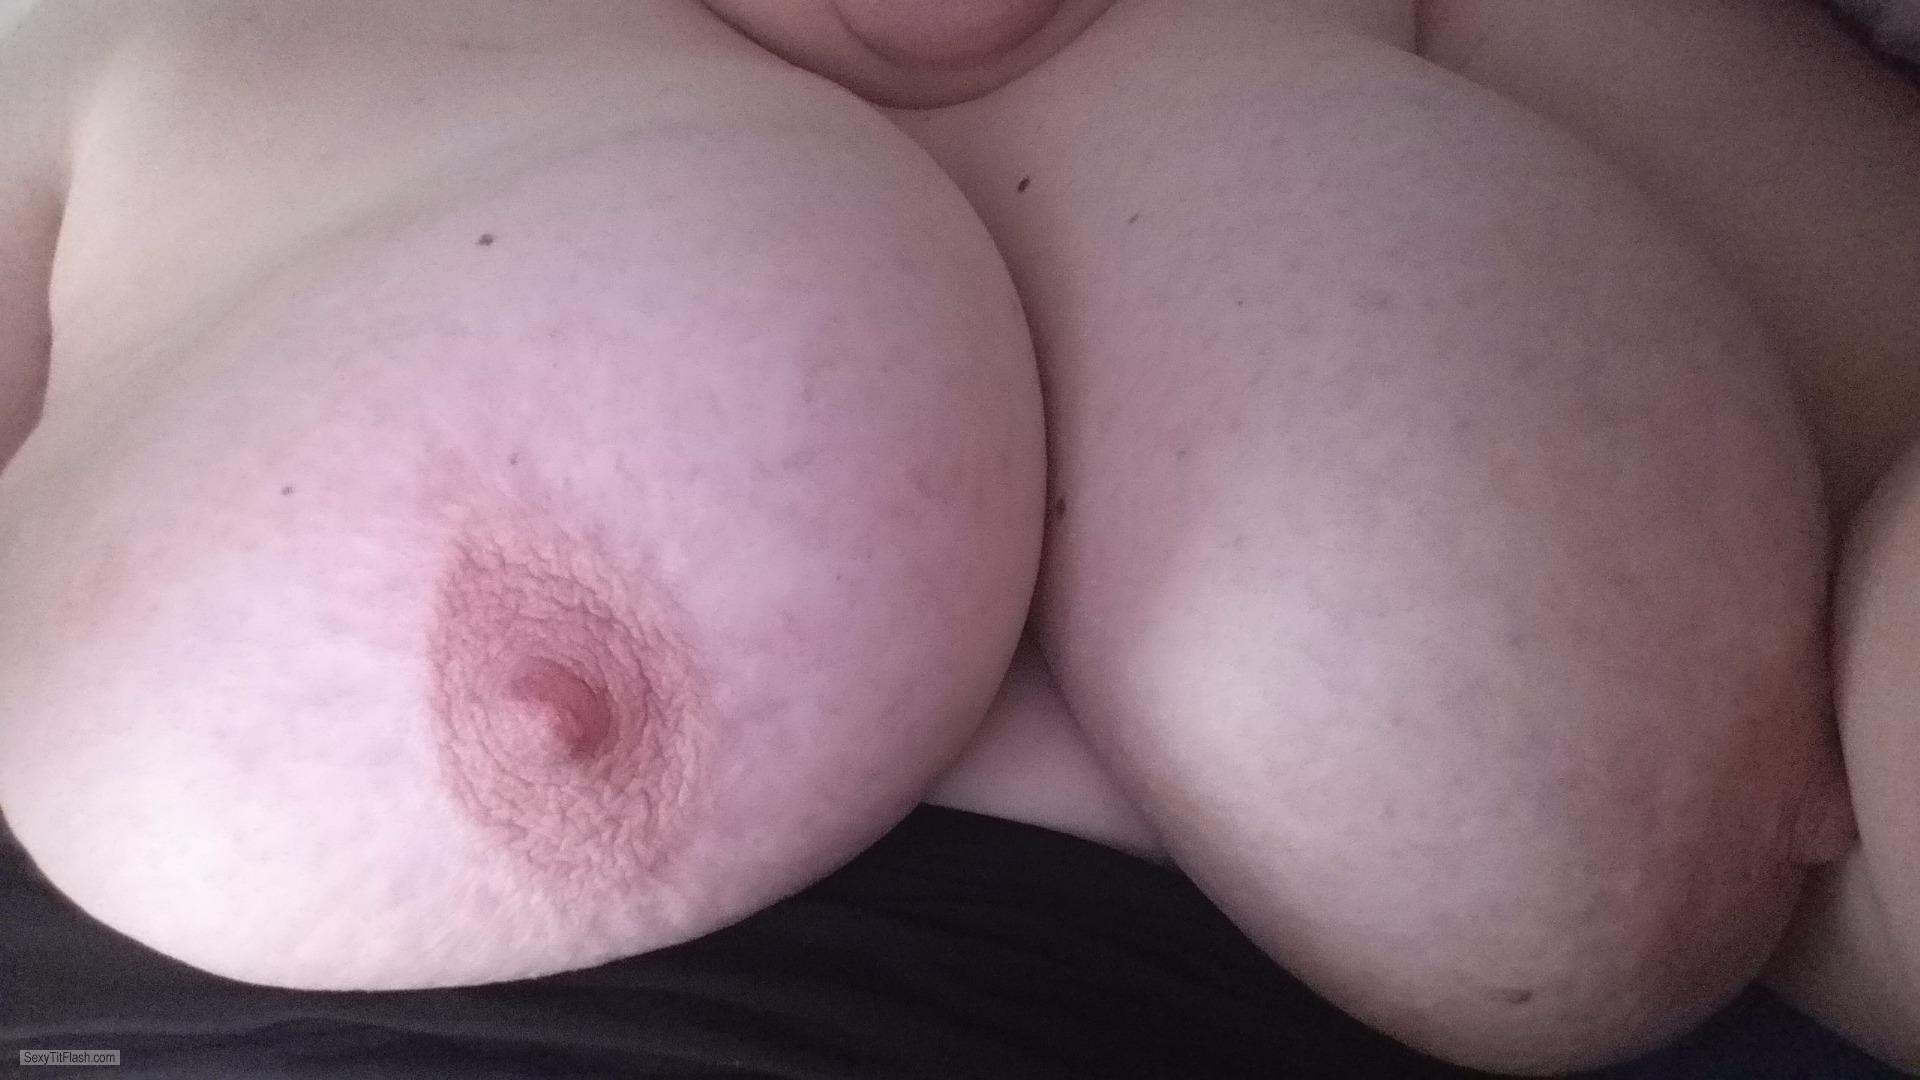 My Very big Tits Selfie by Bigallover